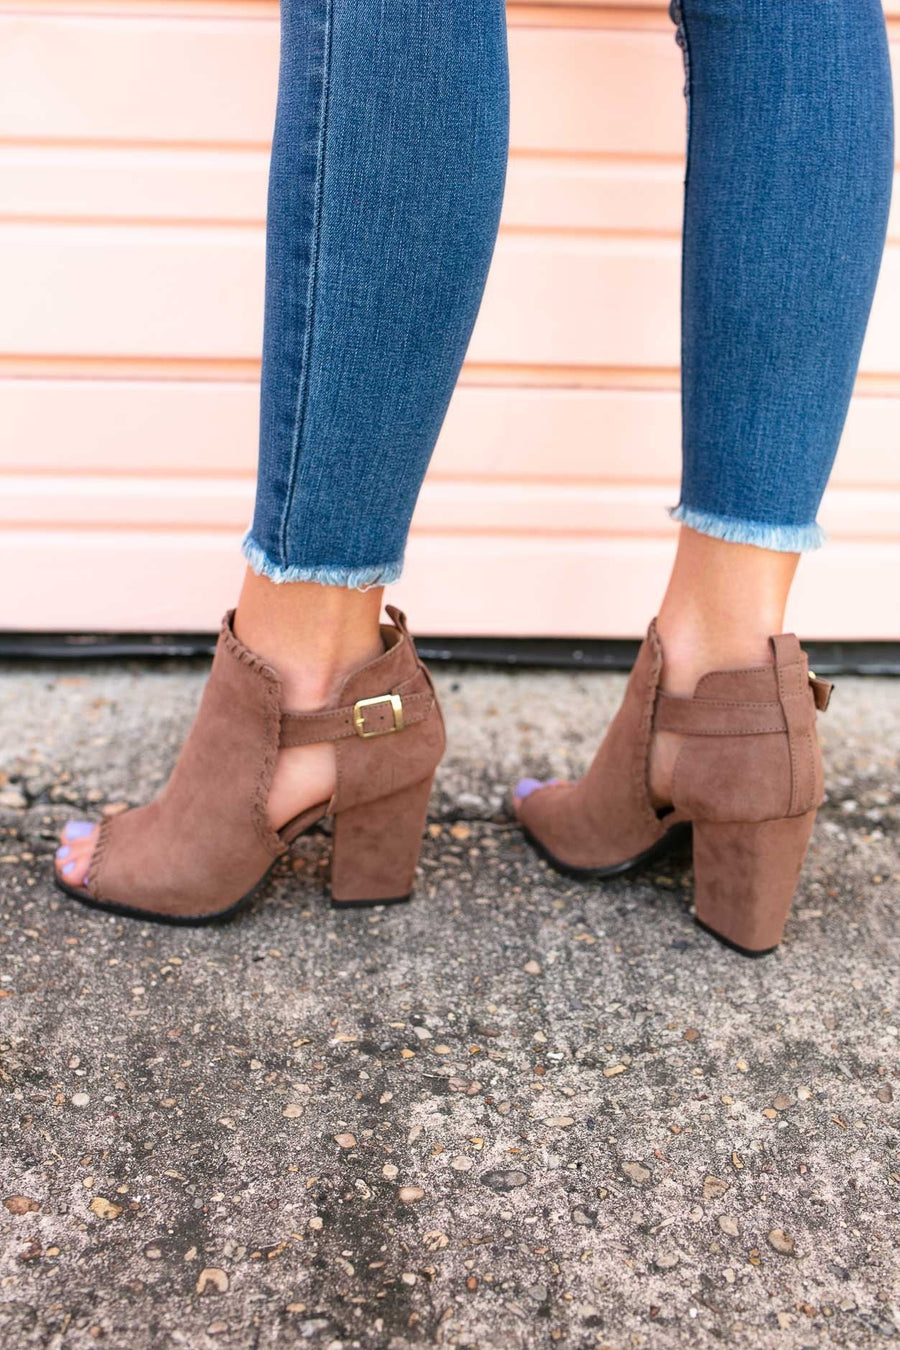 Shoes I Love You A Latte Suede Ruffle Booties - Nutmeg - Lotus Boutique